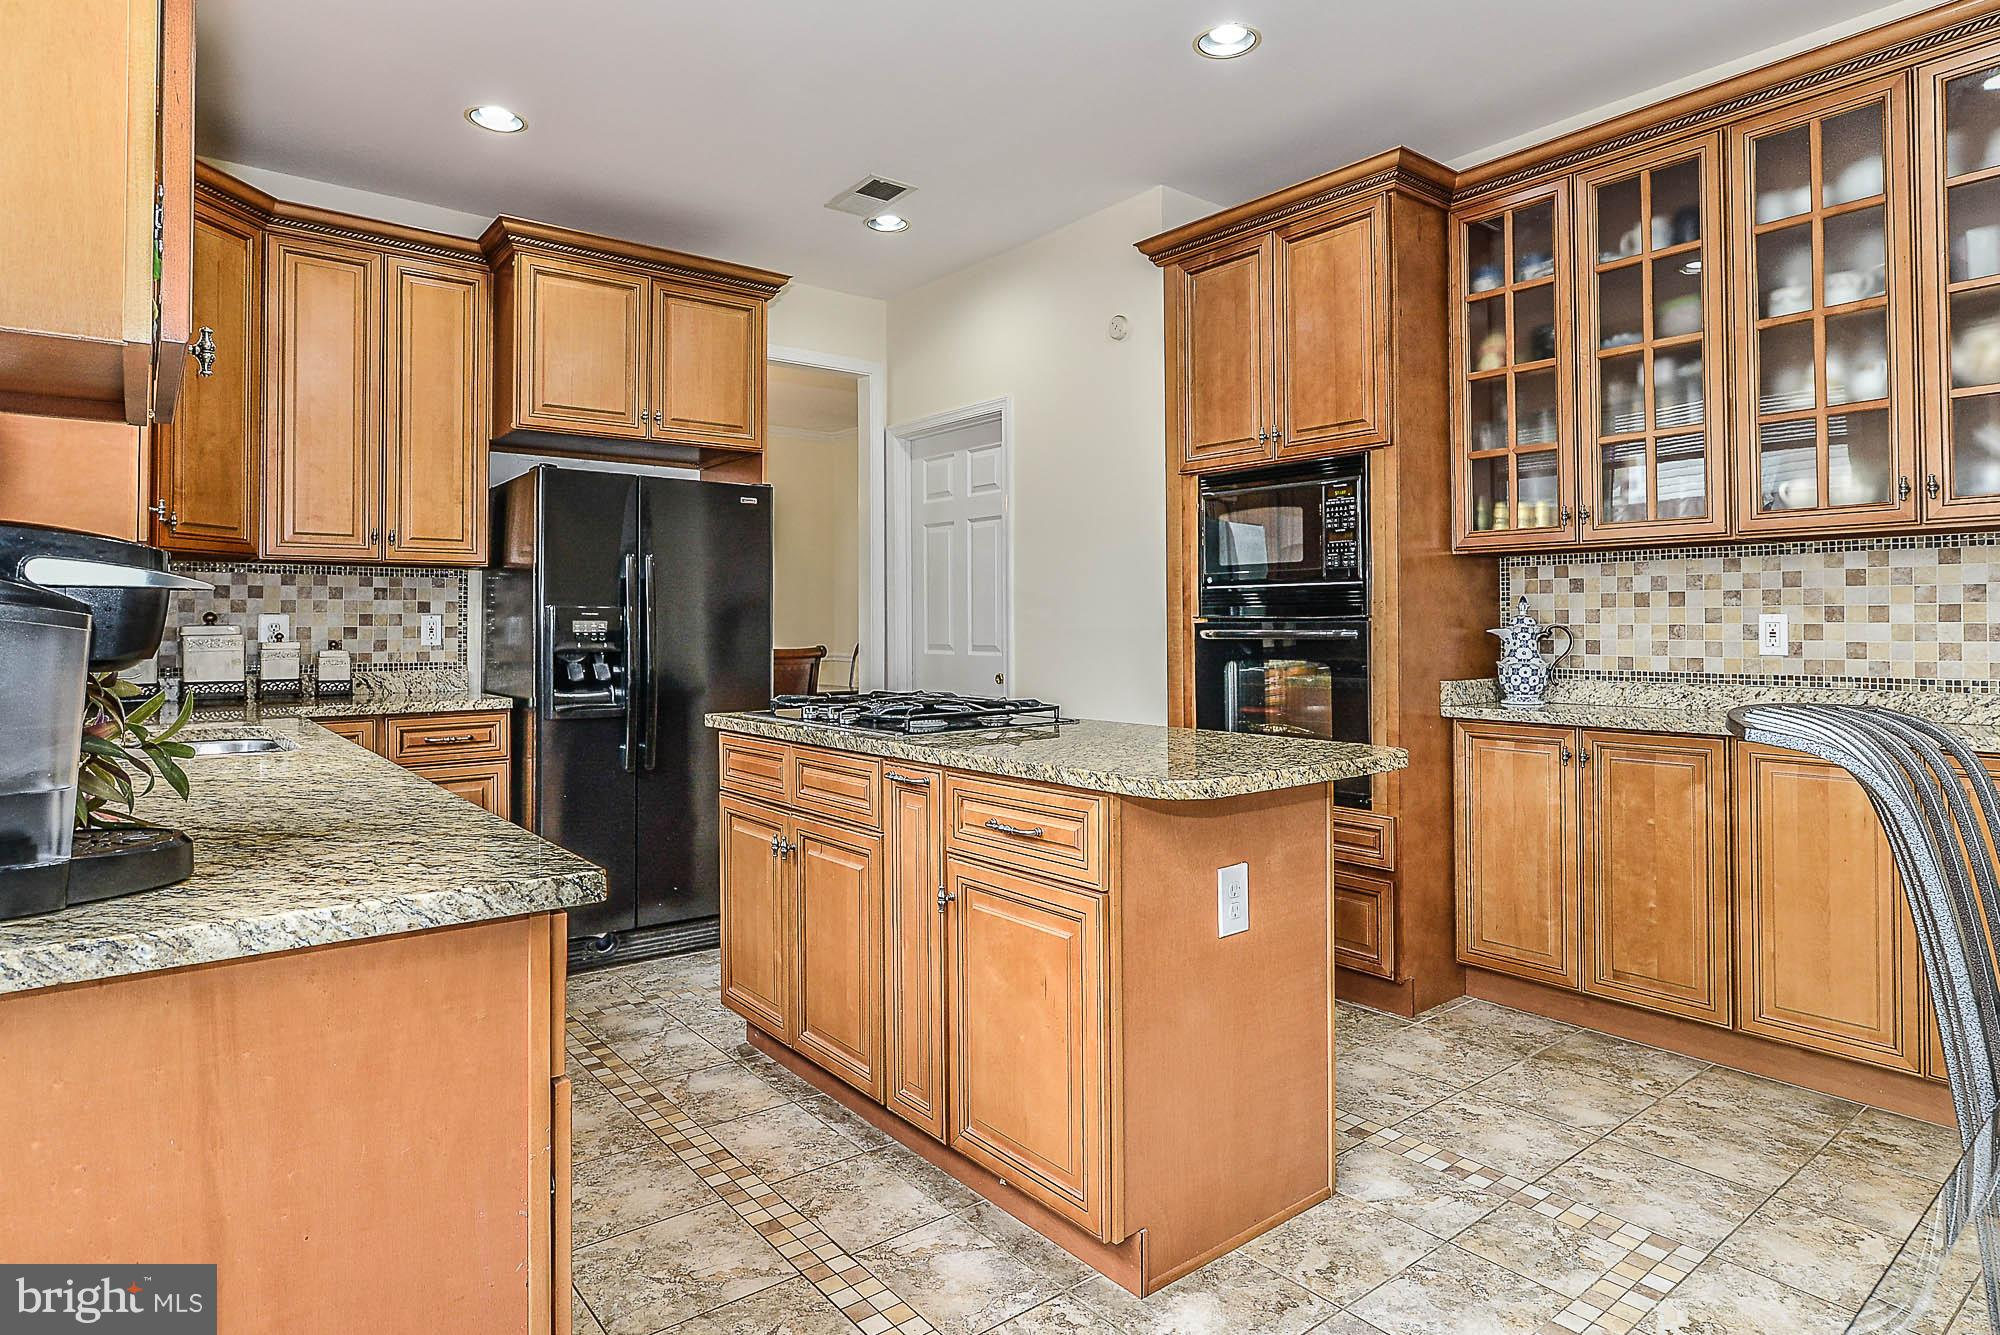 Totally Updated Brick Front Colonial on one of largest lots in neighborhood! New HVAC! Dramatic 2 story foyer & open floorplan. Wood flrs thruout main lvl. Eat-in Kitchen w/granite, upgraded cabs, tile fls & backsplash. Fam Rm w/wood burning FP steps out to large deck! Master w/cathedral ceilings, sitting rm & priv lux bth. Spacious add'l bedrms! Fin LL is perfect for entertaining! Great Location!